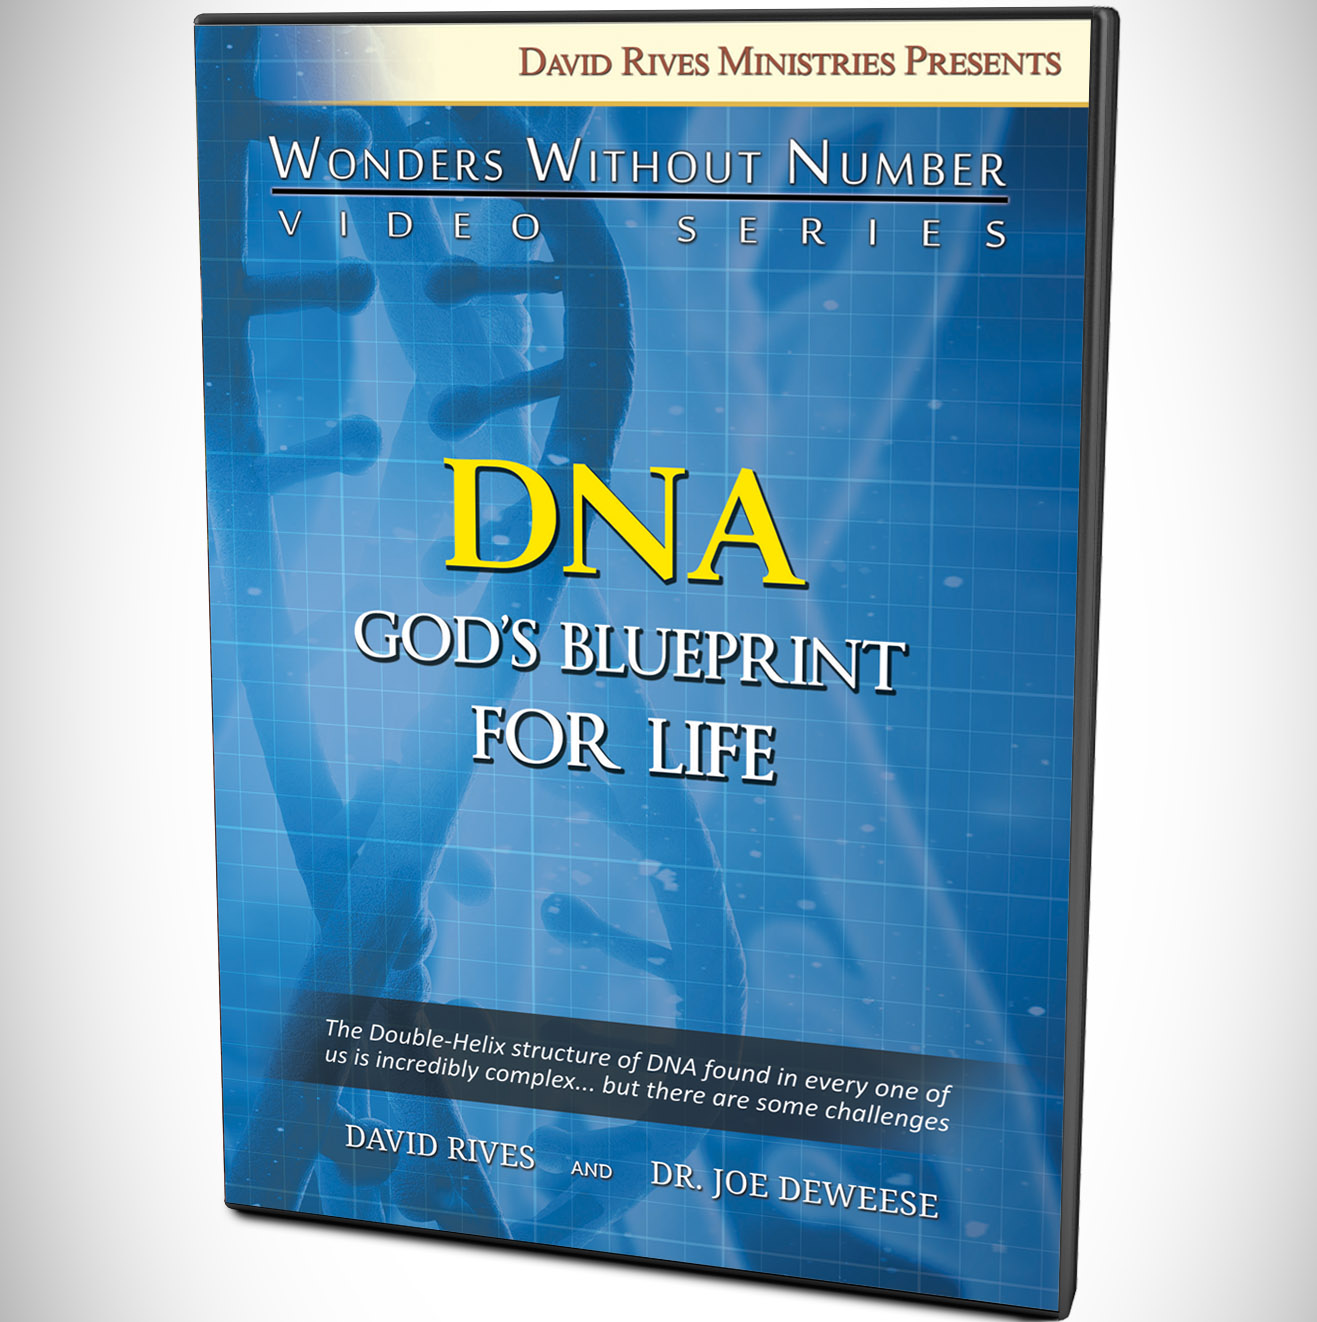 Dna gods blueprint for life dvd dr joe deweese drm dna gods blueprint for life malvernweather Choice Image